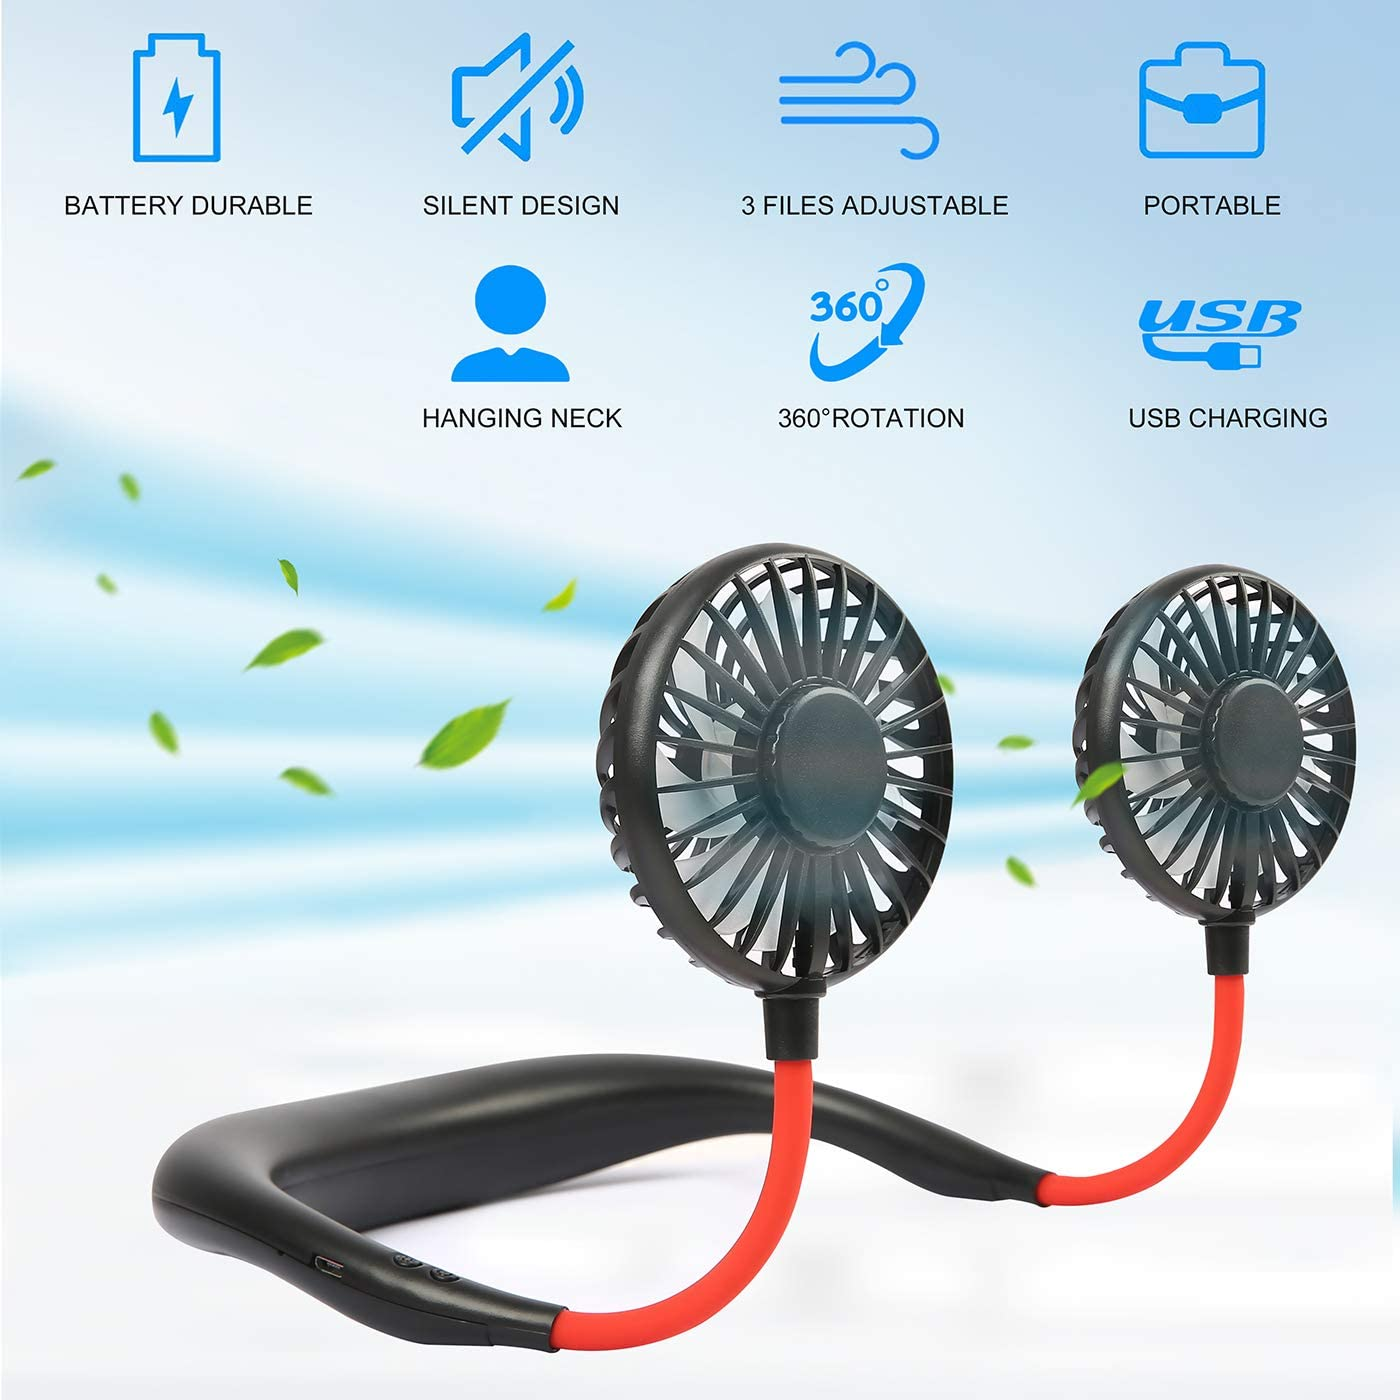 USB Cable Portable Hanging Neck Folding Fan Rechargeable Gift Mini FANS A8D0